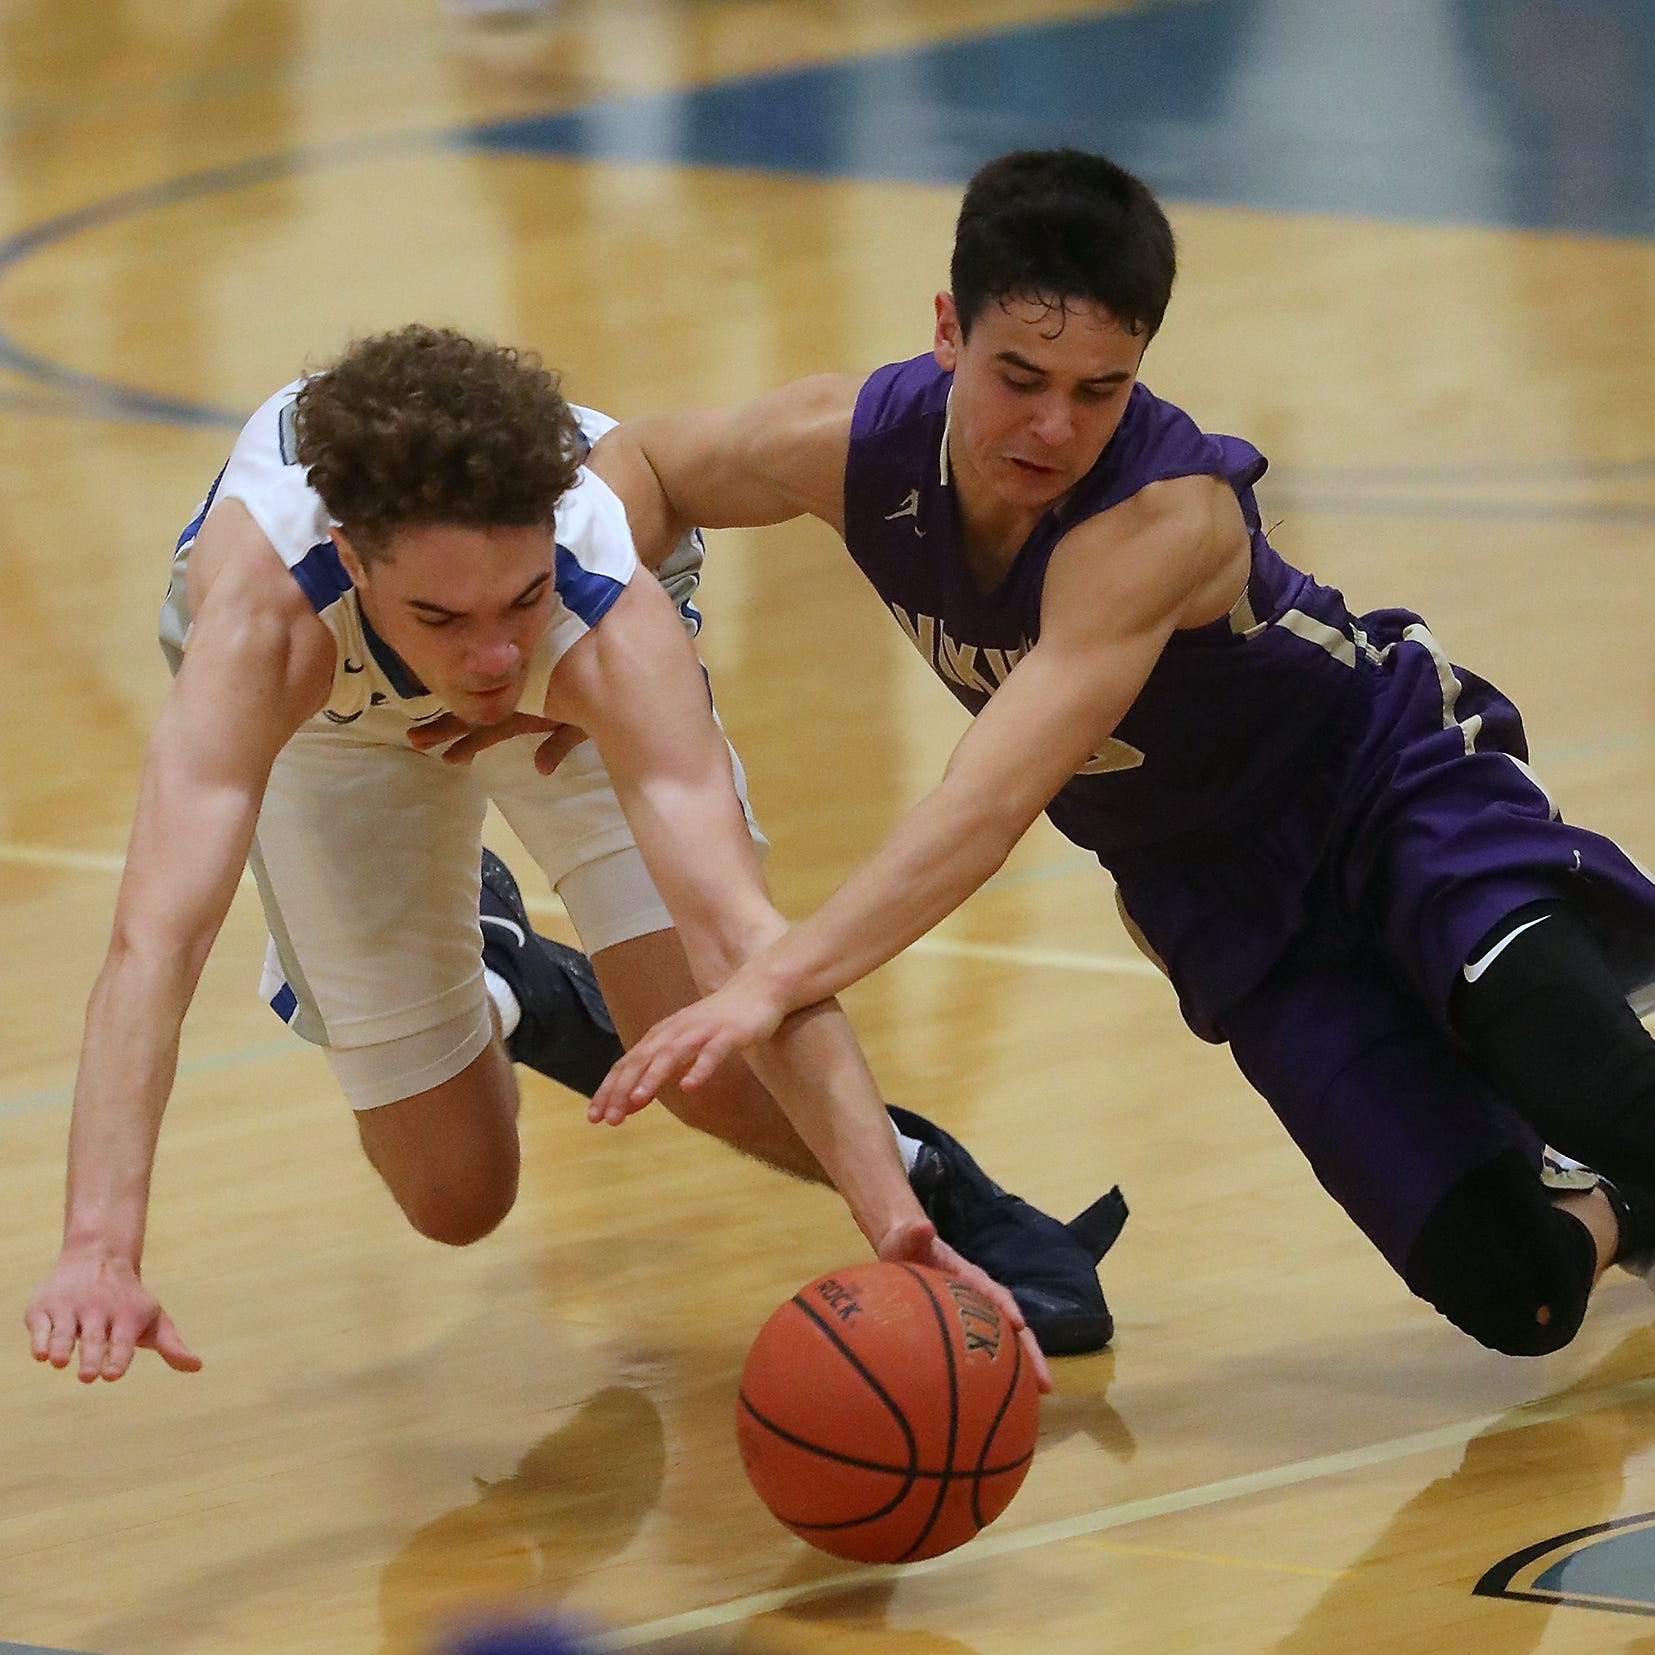 NK boys triumph in latest Viking/Trojan classic hoops tilt